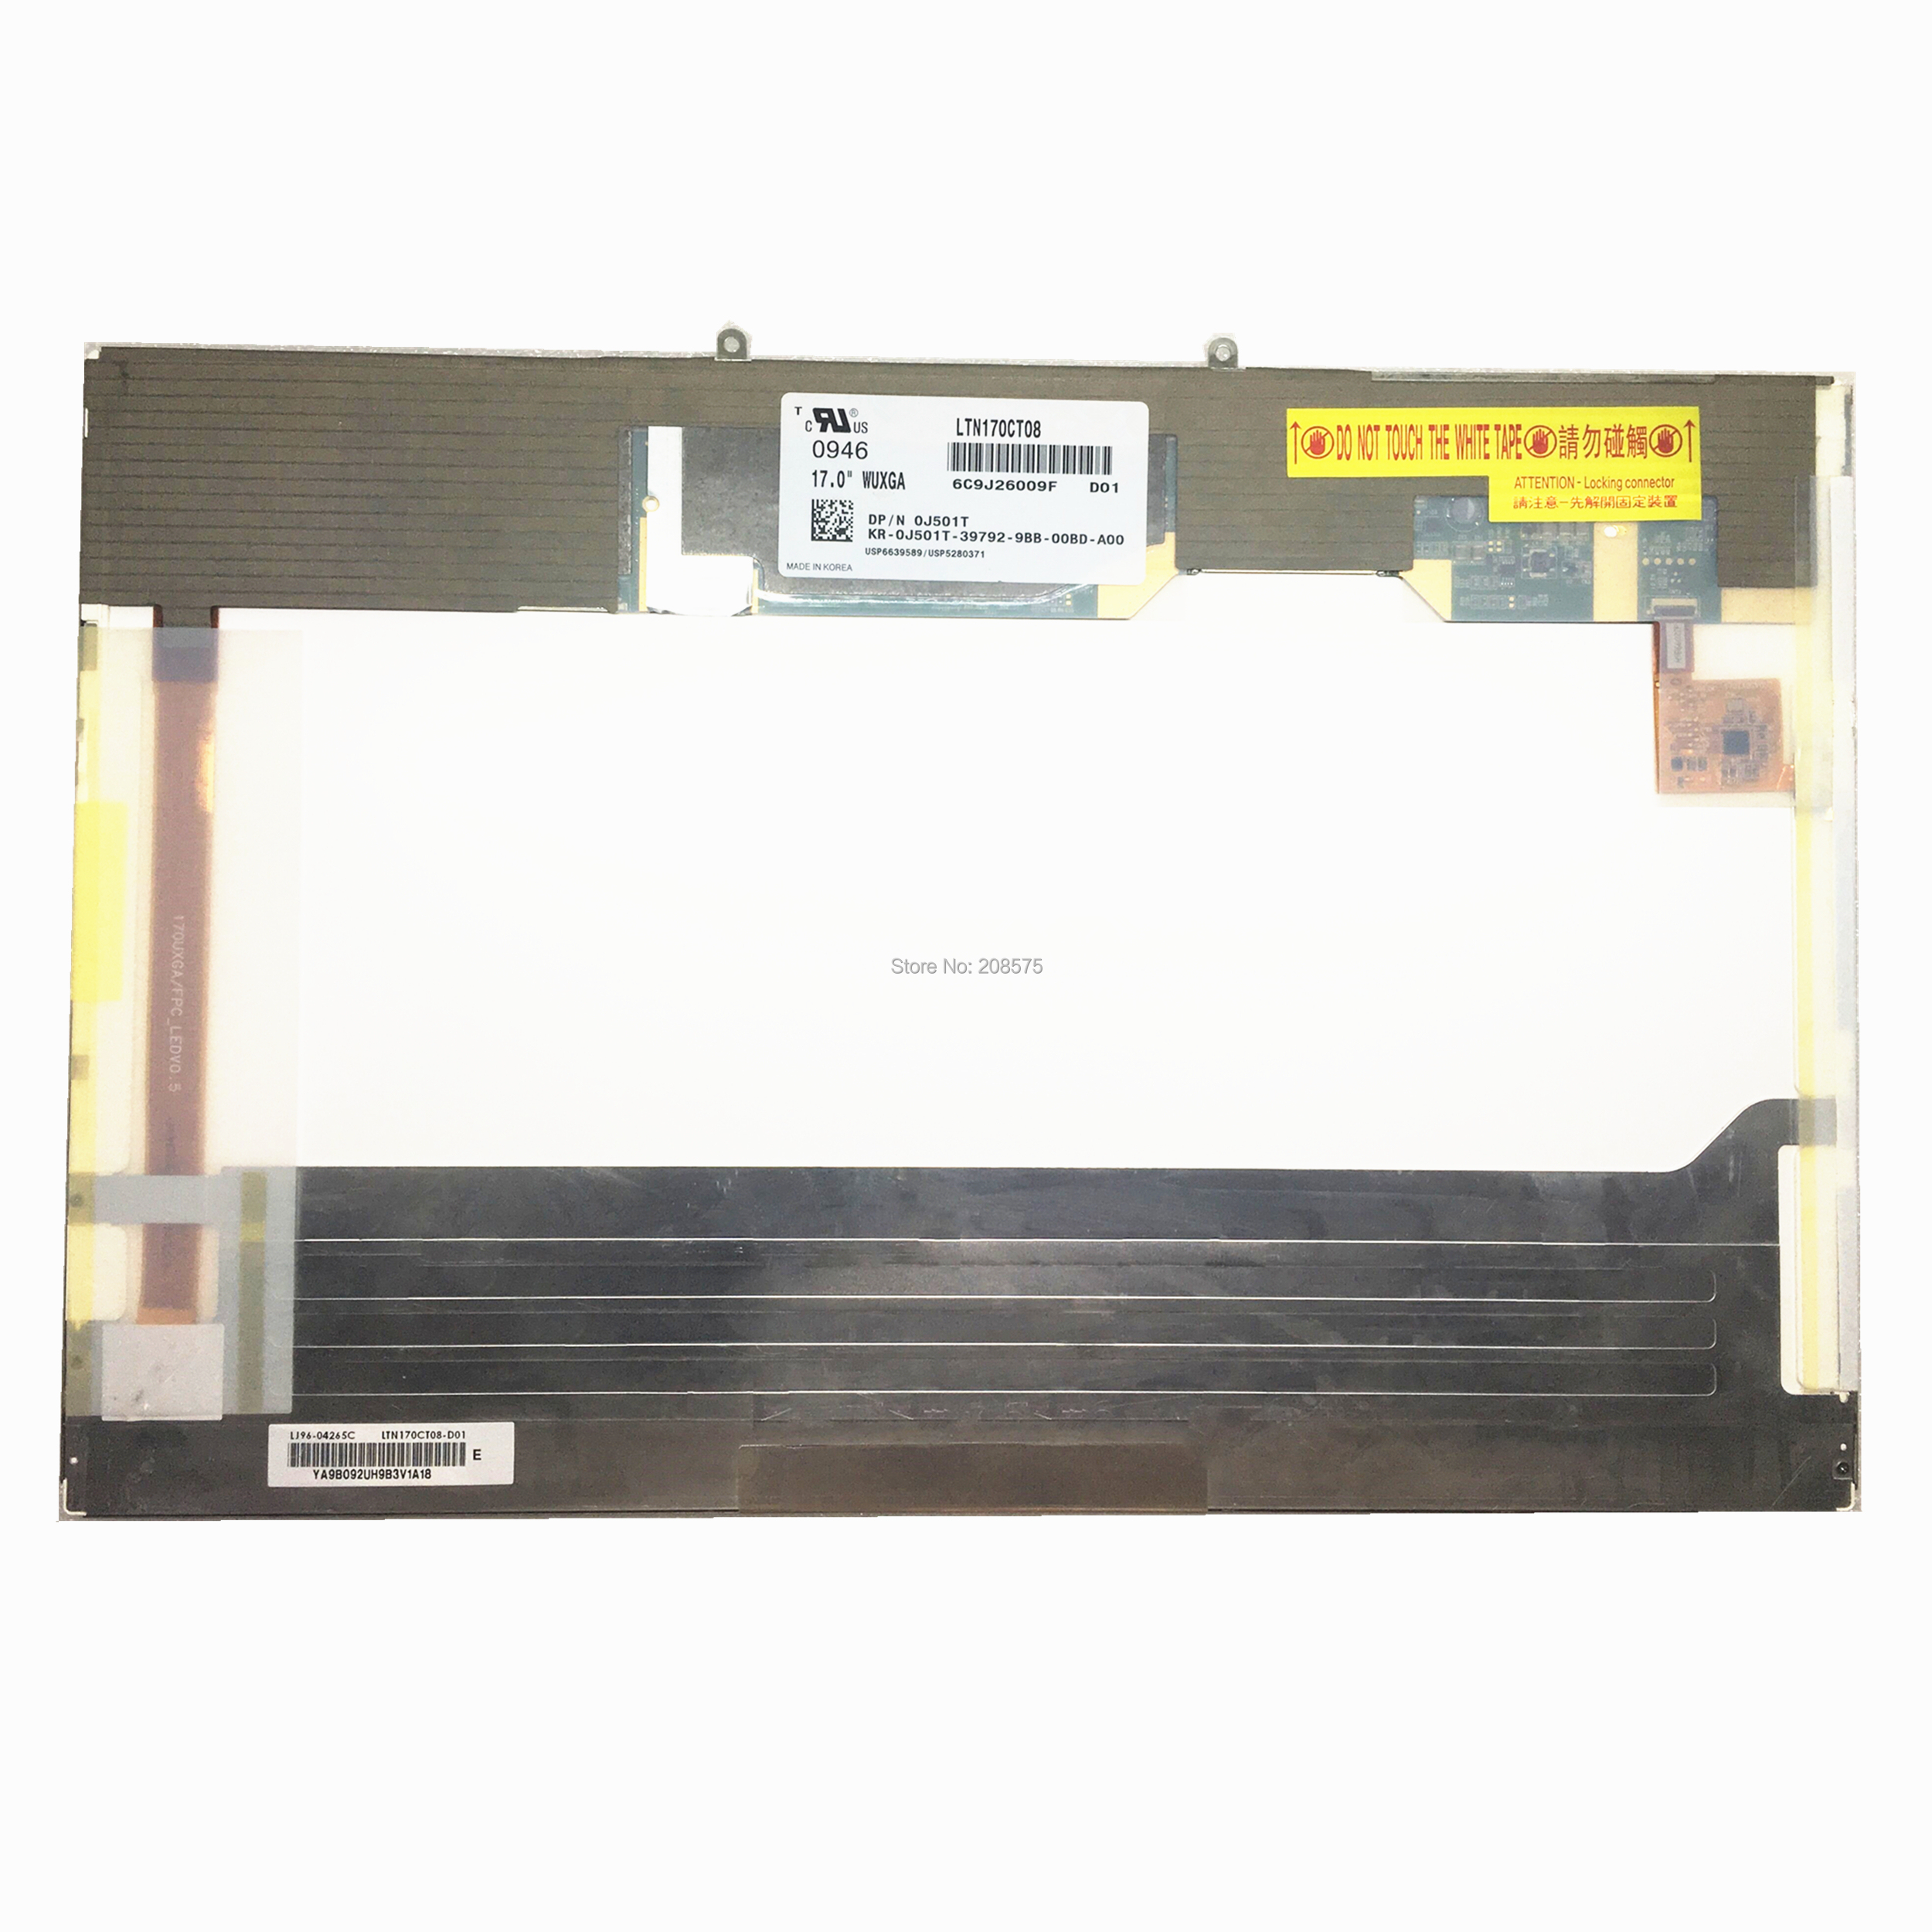 Free Shipping LTN170CT08 LTN170CT08-D01 fit for DELL Laptop Lcd Screen Panel 1920*1200 LVDS 40pinsFree Shipping LTN170CT08 LTN170CT08-D01 fit for DELL Laptop Lcd Screen Panel 1920*1200 LVDS 40pins